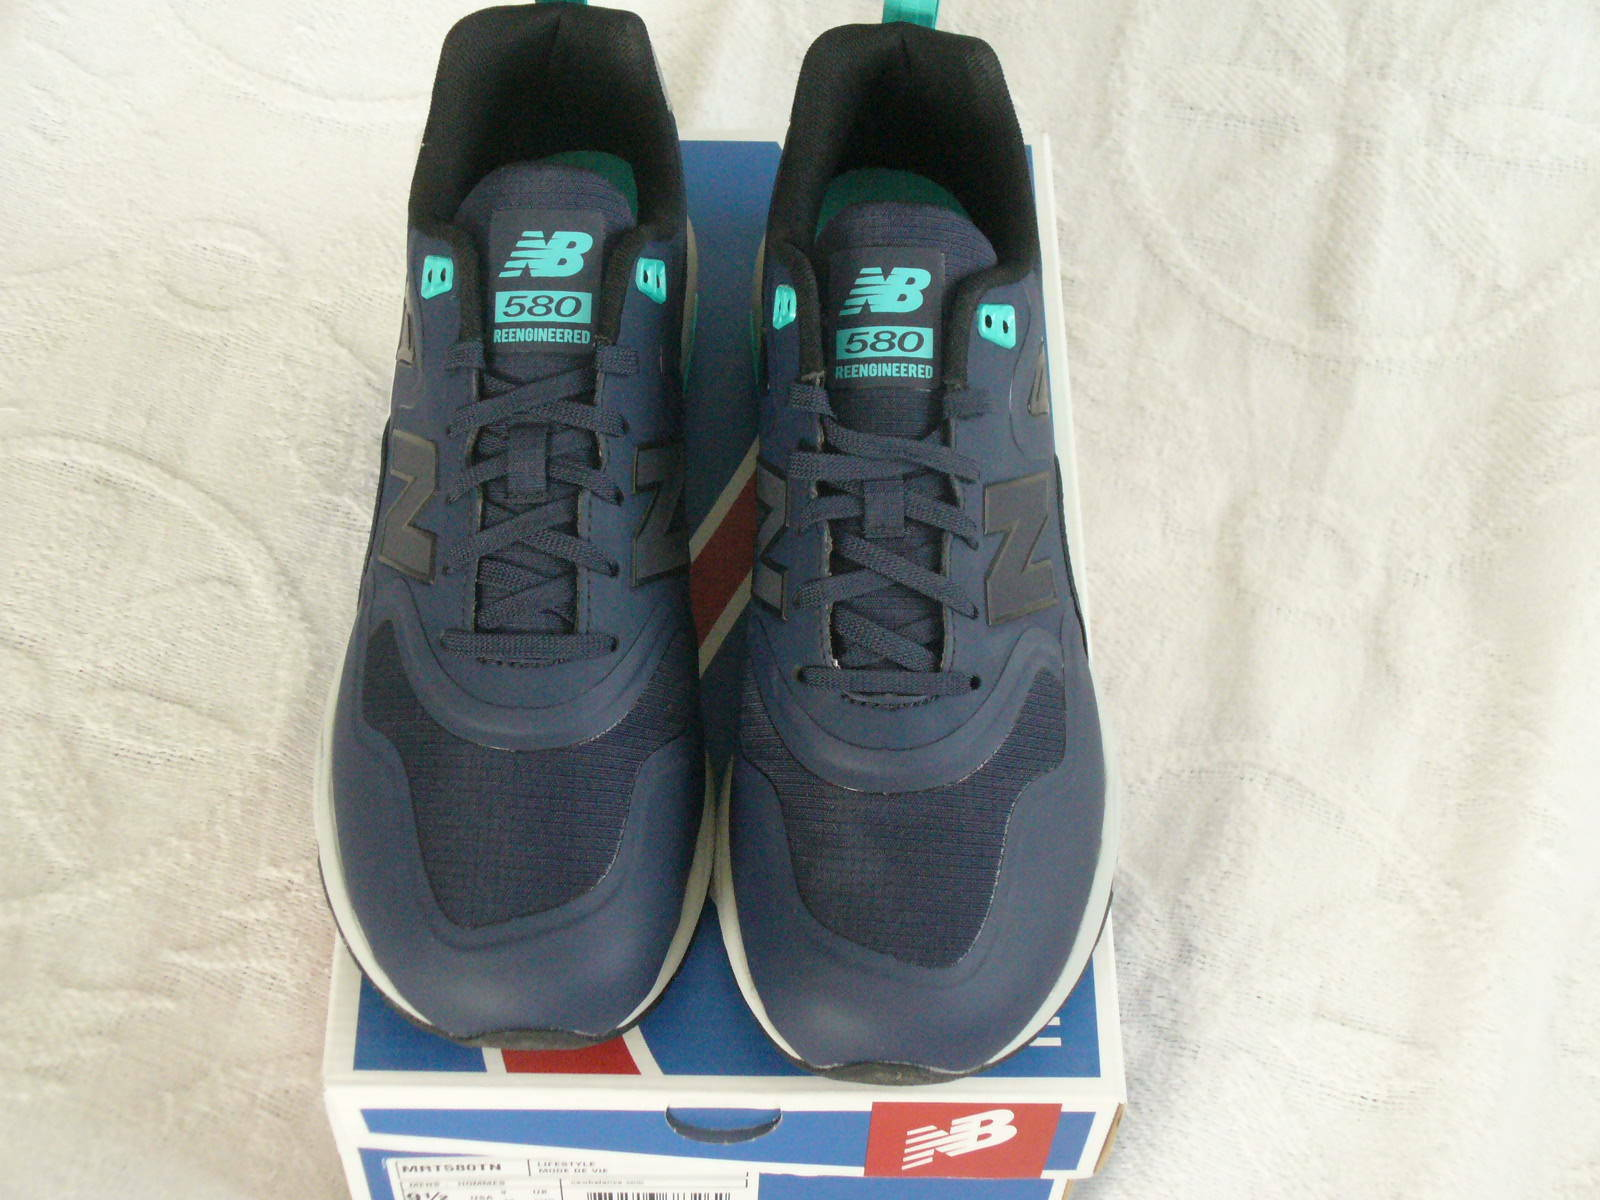 AUTHENTIC;New Balance MRT580TN Navy Teal Grey Men's Lifestyle shoes,Sz9.5 NWB